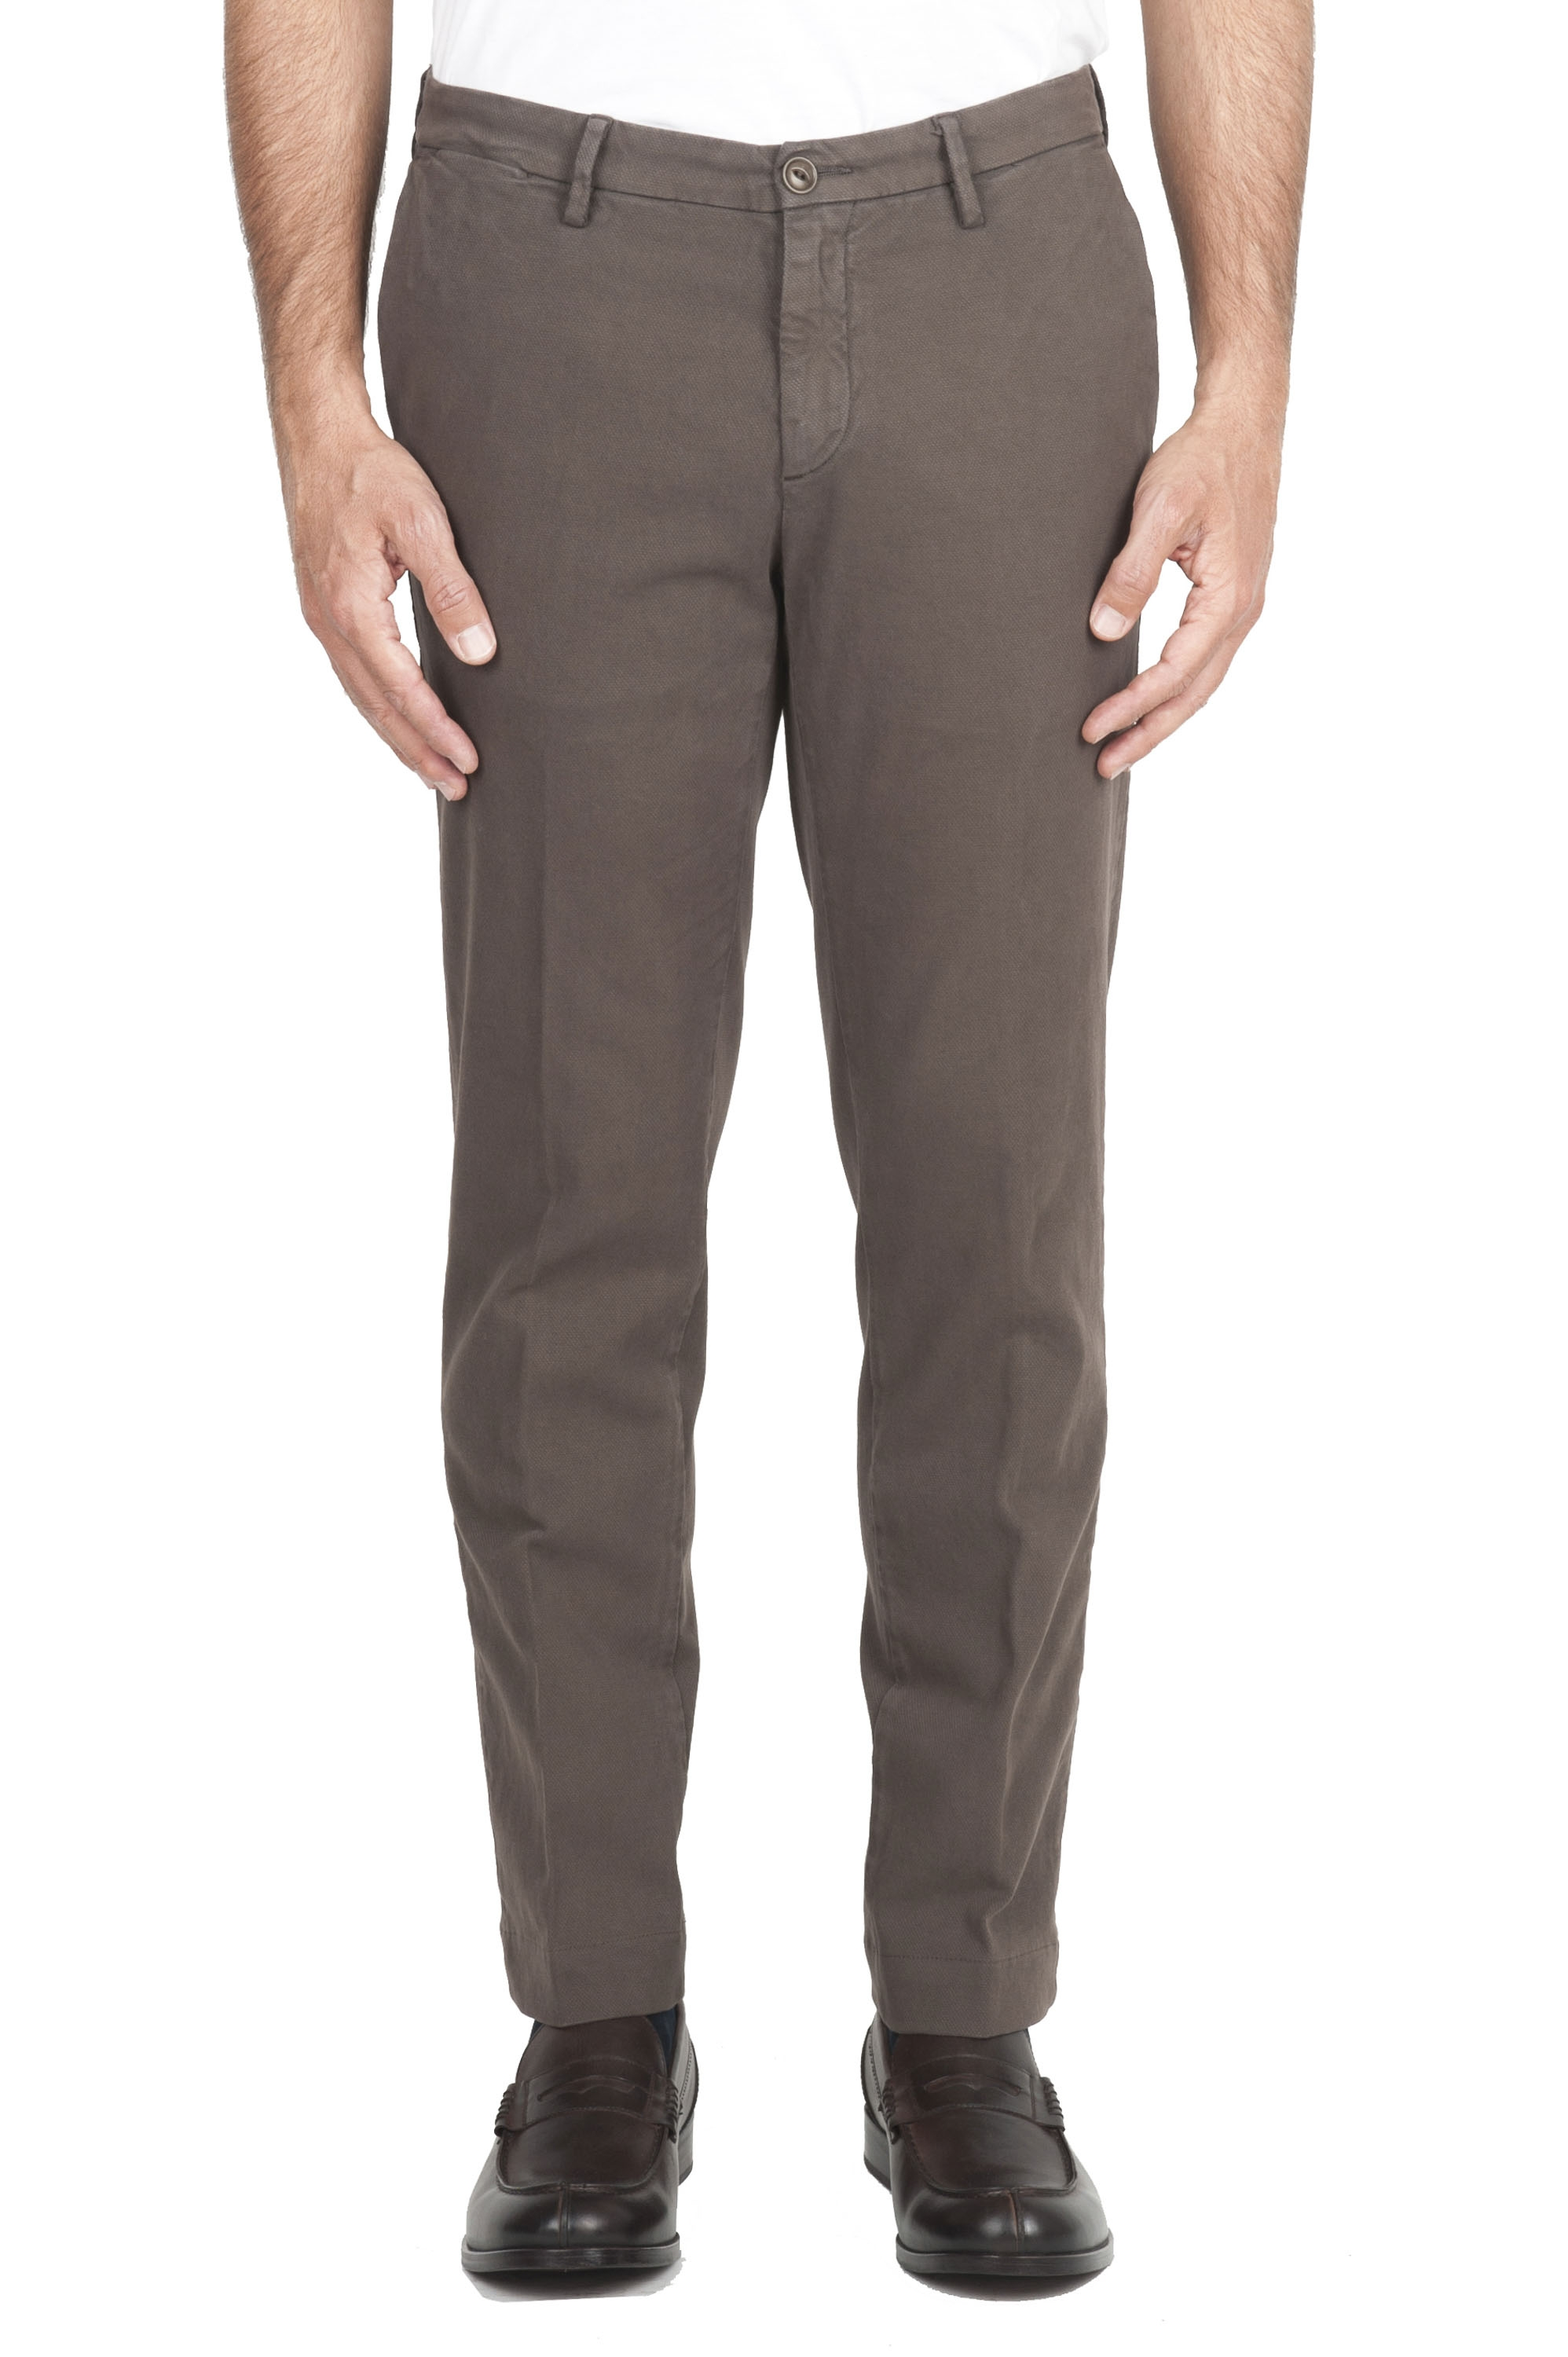 SBU 01539 Pantalon chino classique en coton stretch marron 01